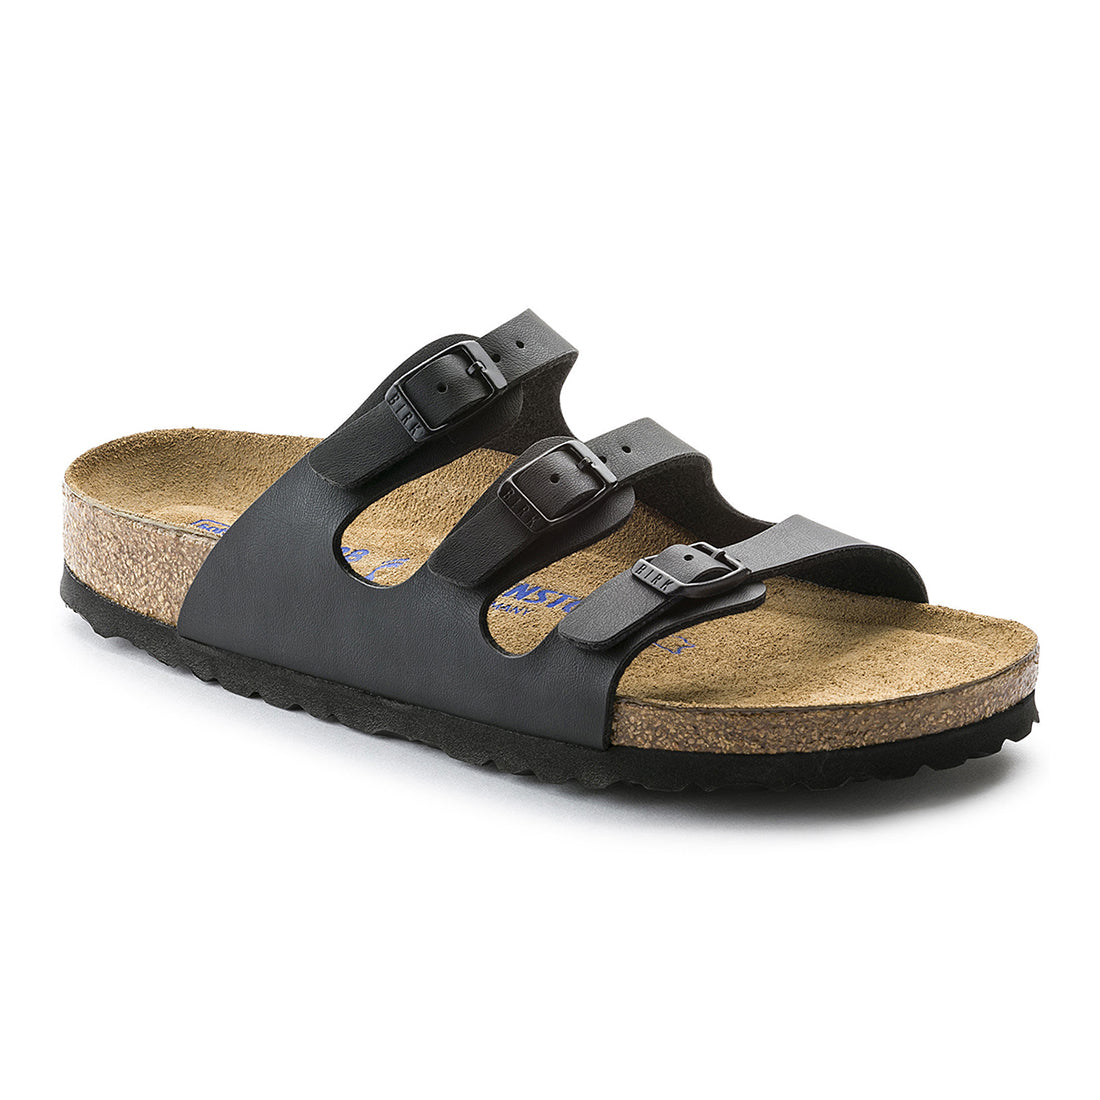 Florida Birko Flor Soft Footbed (Narrow) - Black - 053013